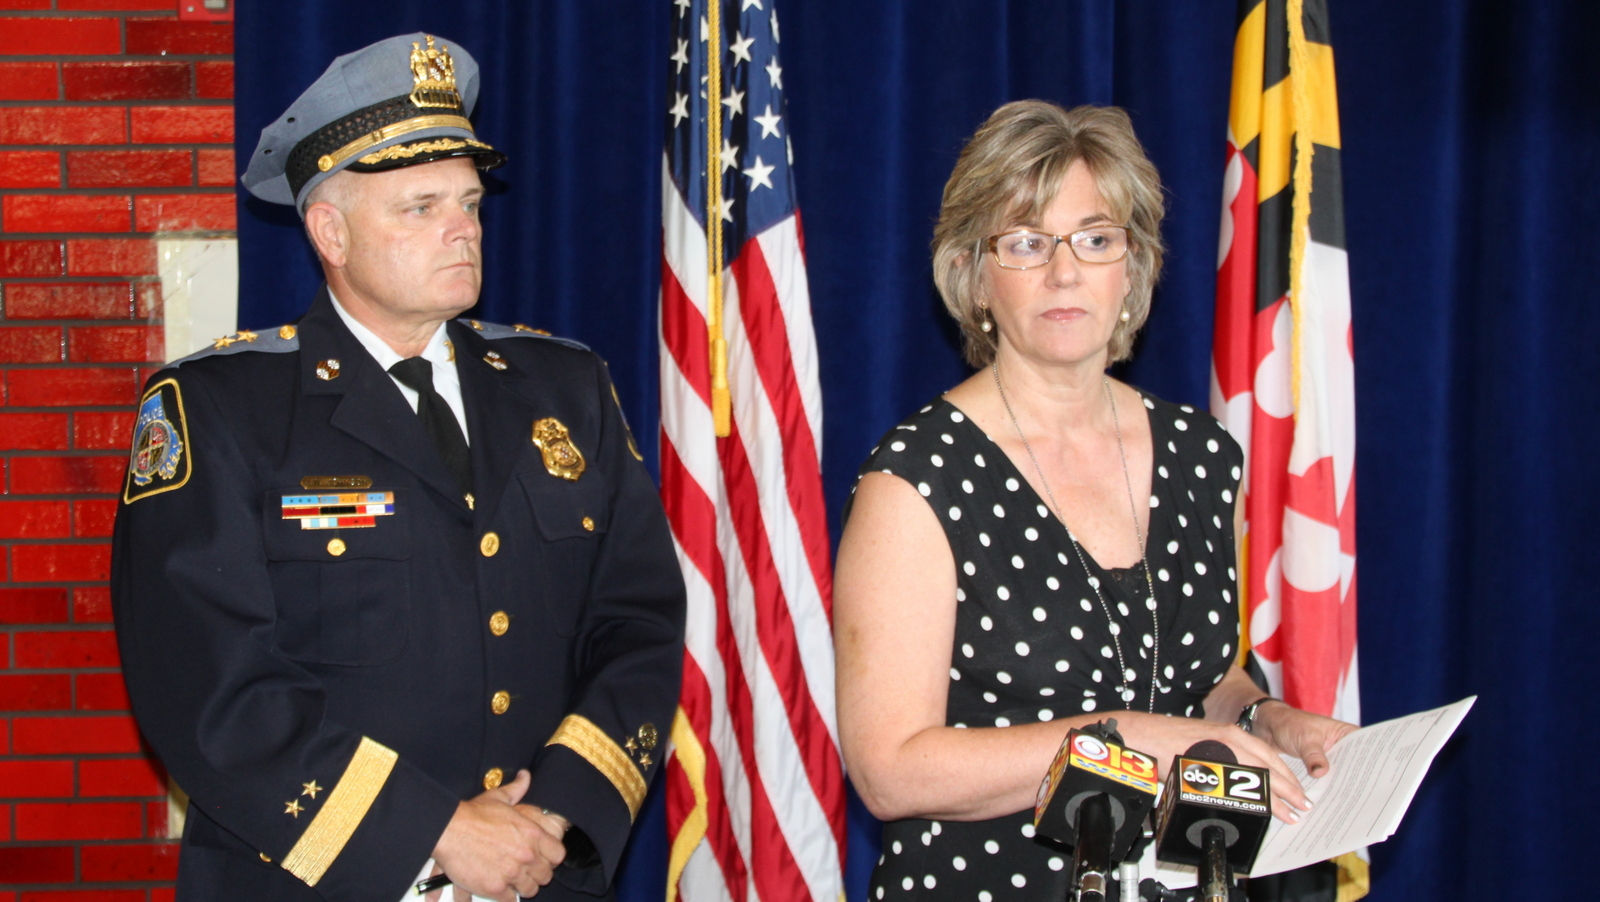 Baltimore County Police spokeswoman Elise Armacost, with Chief Jim Johnson, discuss the police shooting of Korryn Gaines. (Fern Shen)